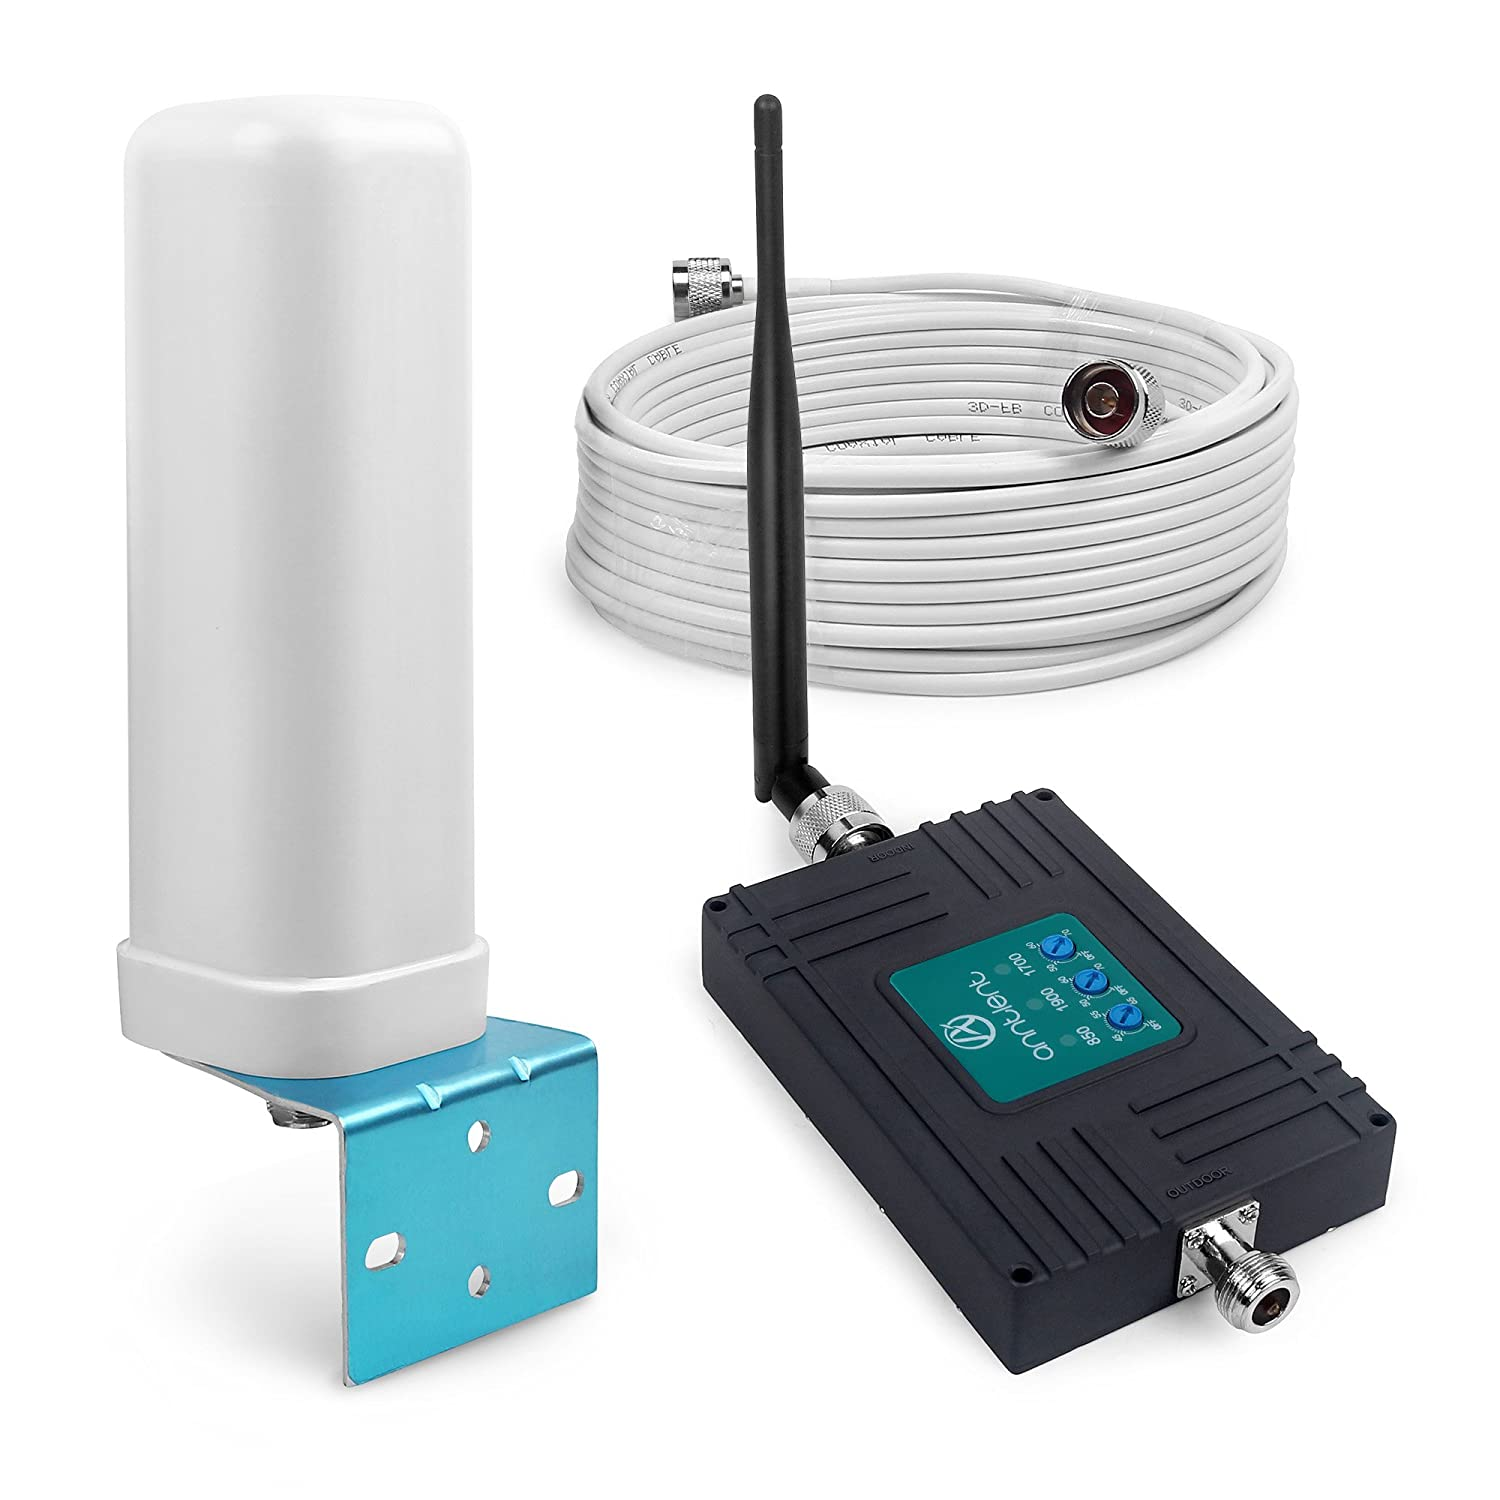 ANNTLENT Tri-Band Cell Phone Signal Booster Kit for Remote Area - Boosts 2G 3G 4G LTE Signal ANNTLENT.Ltd